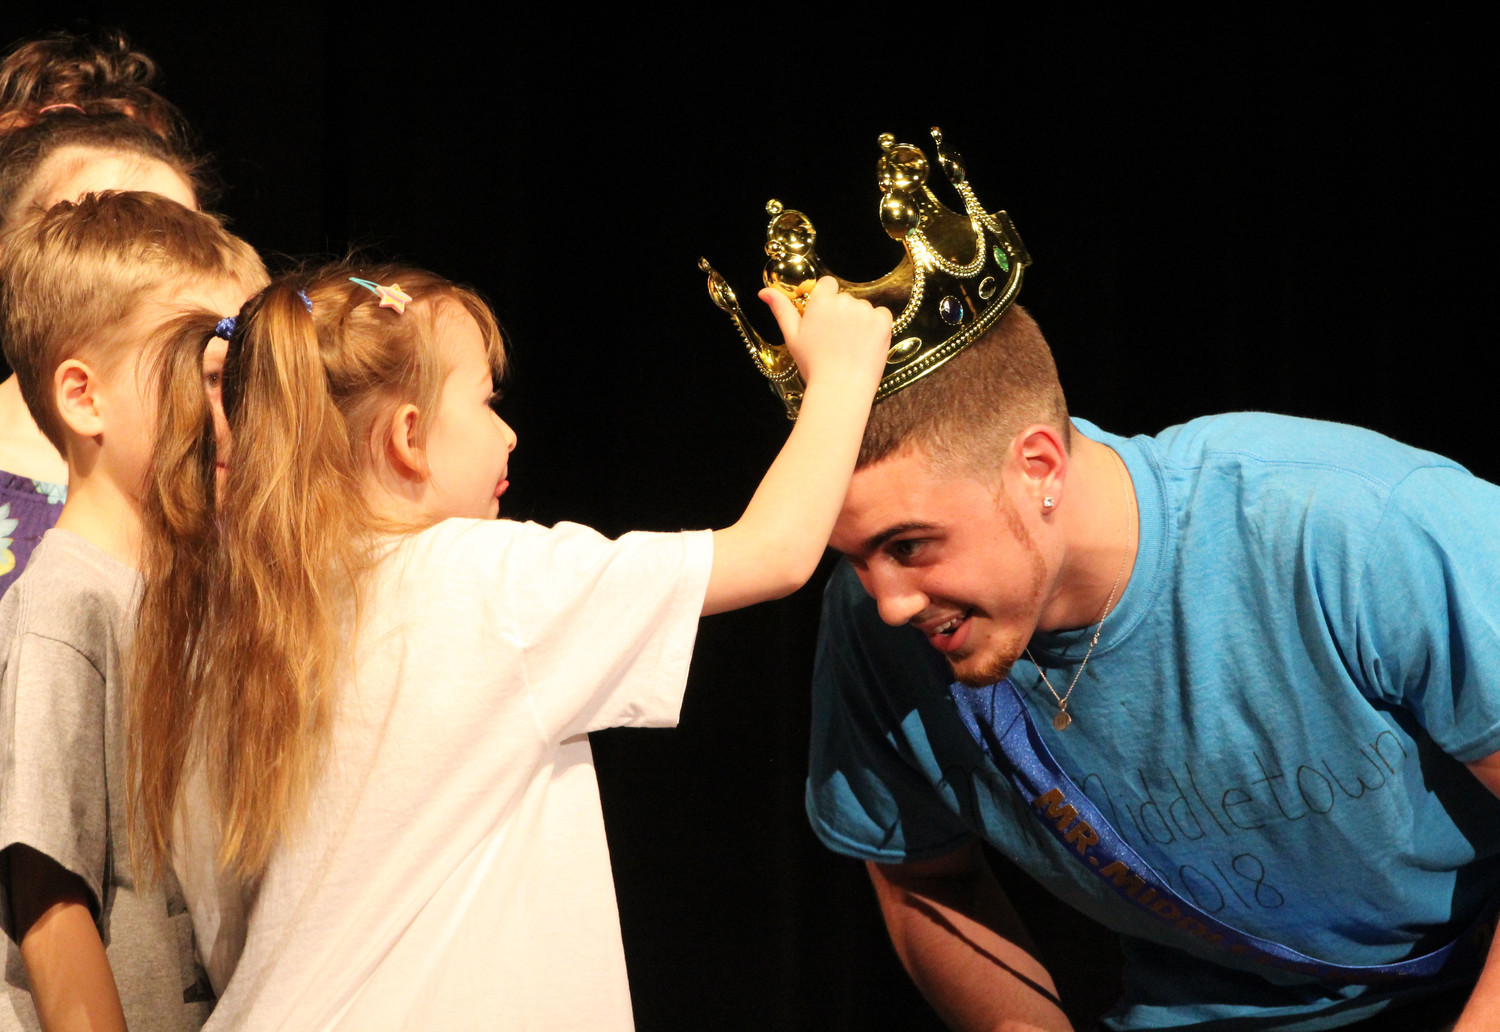 Zayla Gora crowns Tré Leach Mr. Middletown on April 13.